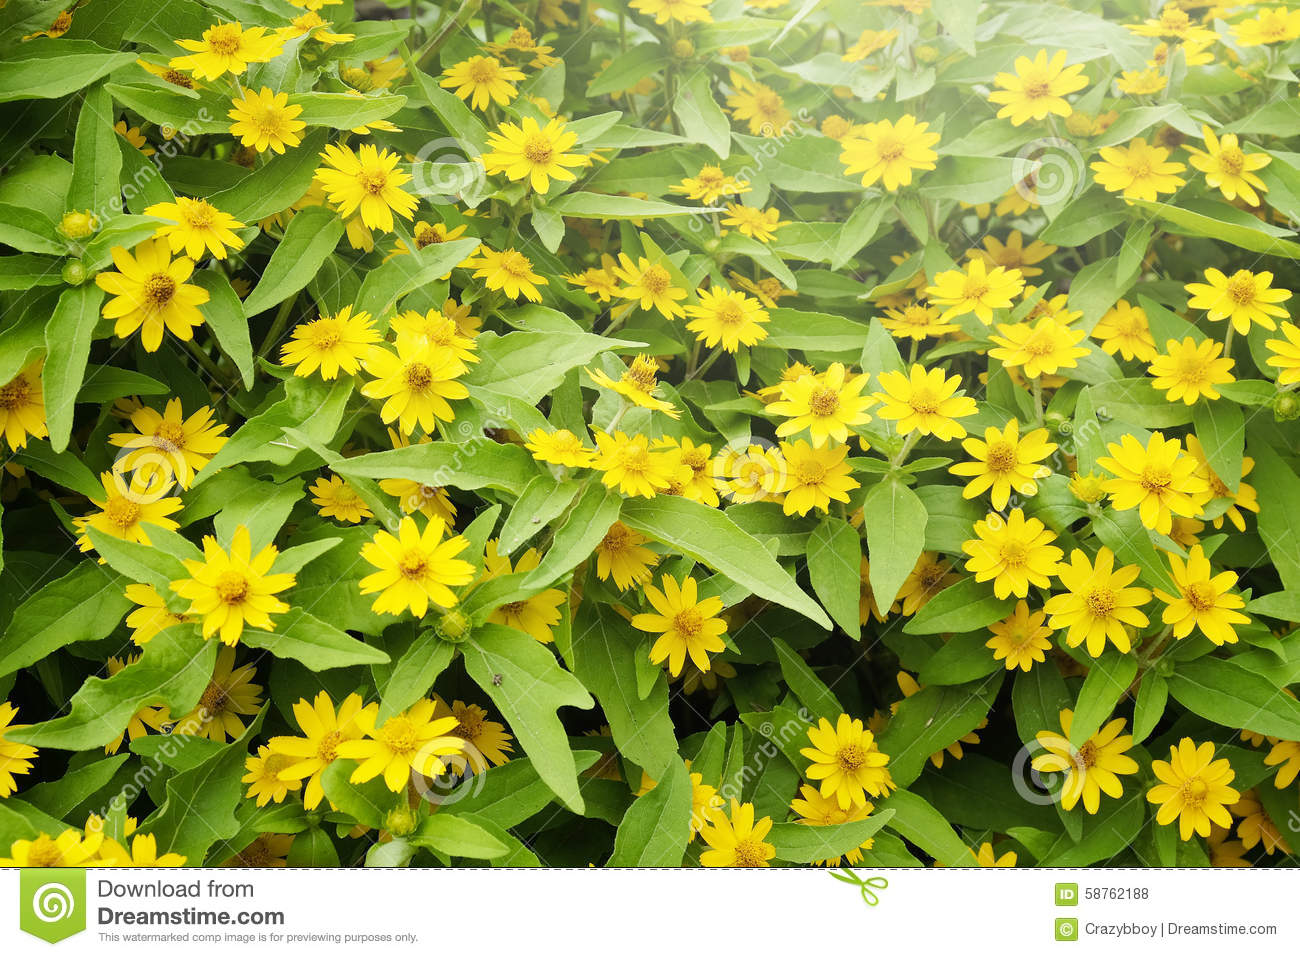 Background of small yellow flowers stock photo image of colorful download background of small yellow flowers stock photo image of colorful flora 58762188 mightylinksfo